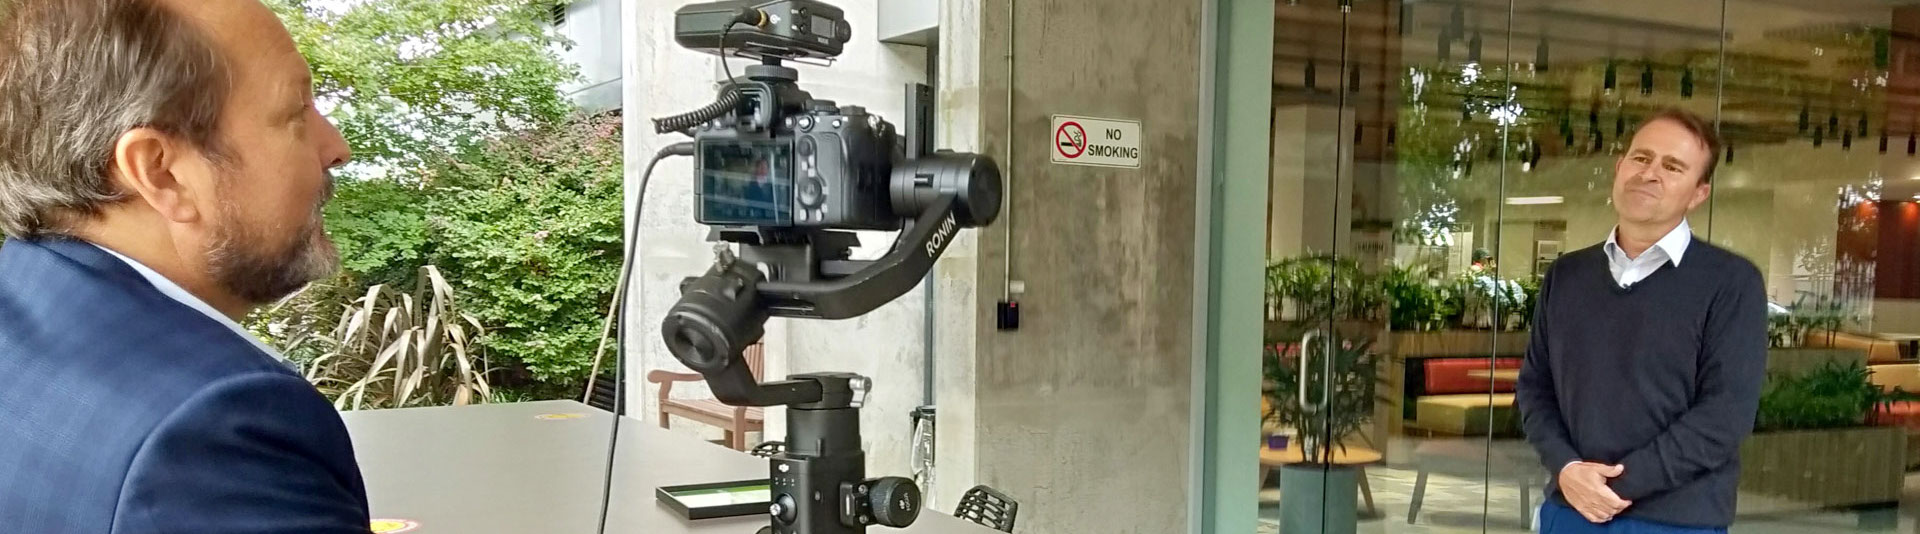 Filming interview with Sony a7s camera on a Ronin S gimbal